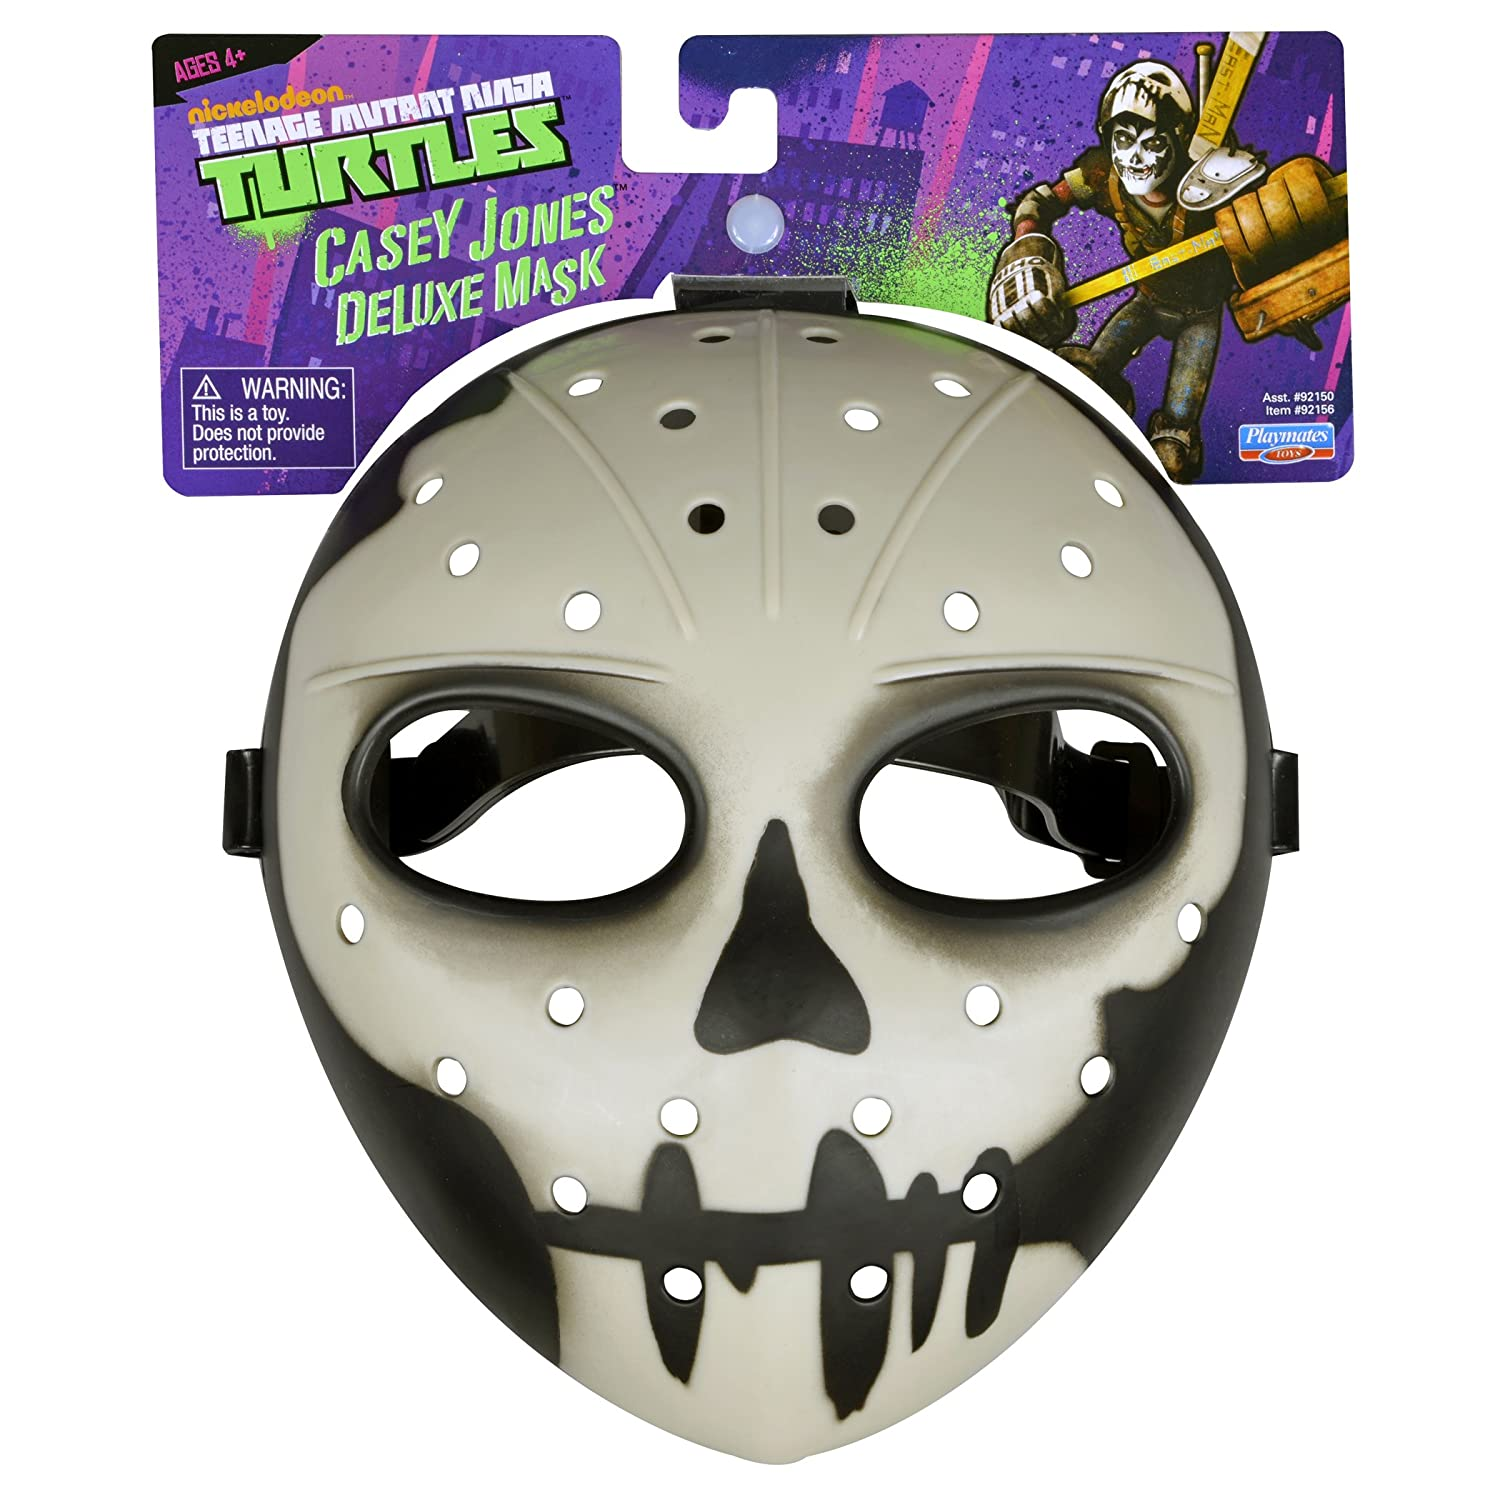 Amazon.com: Teenage Mutant Ninja Turtles Casey Jones deluxe ...